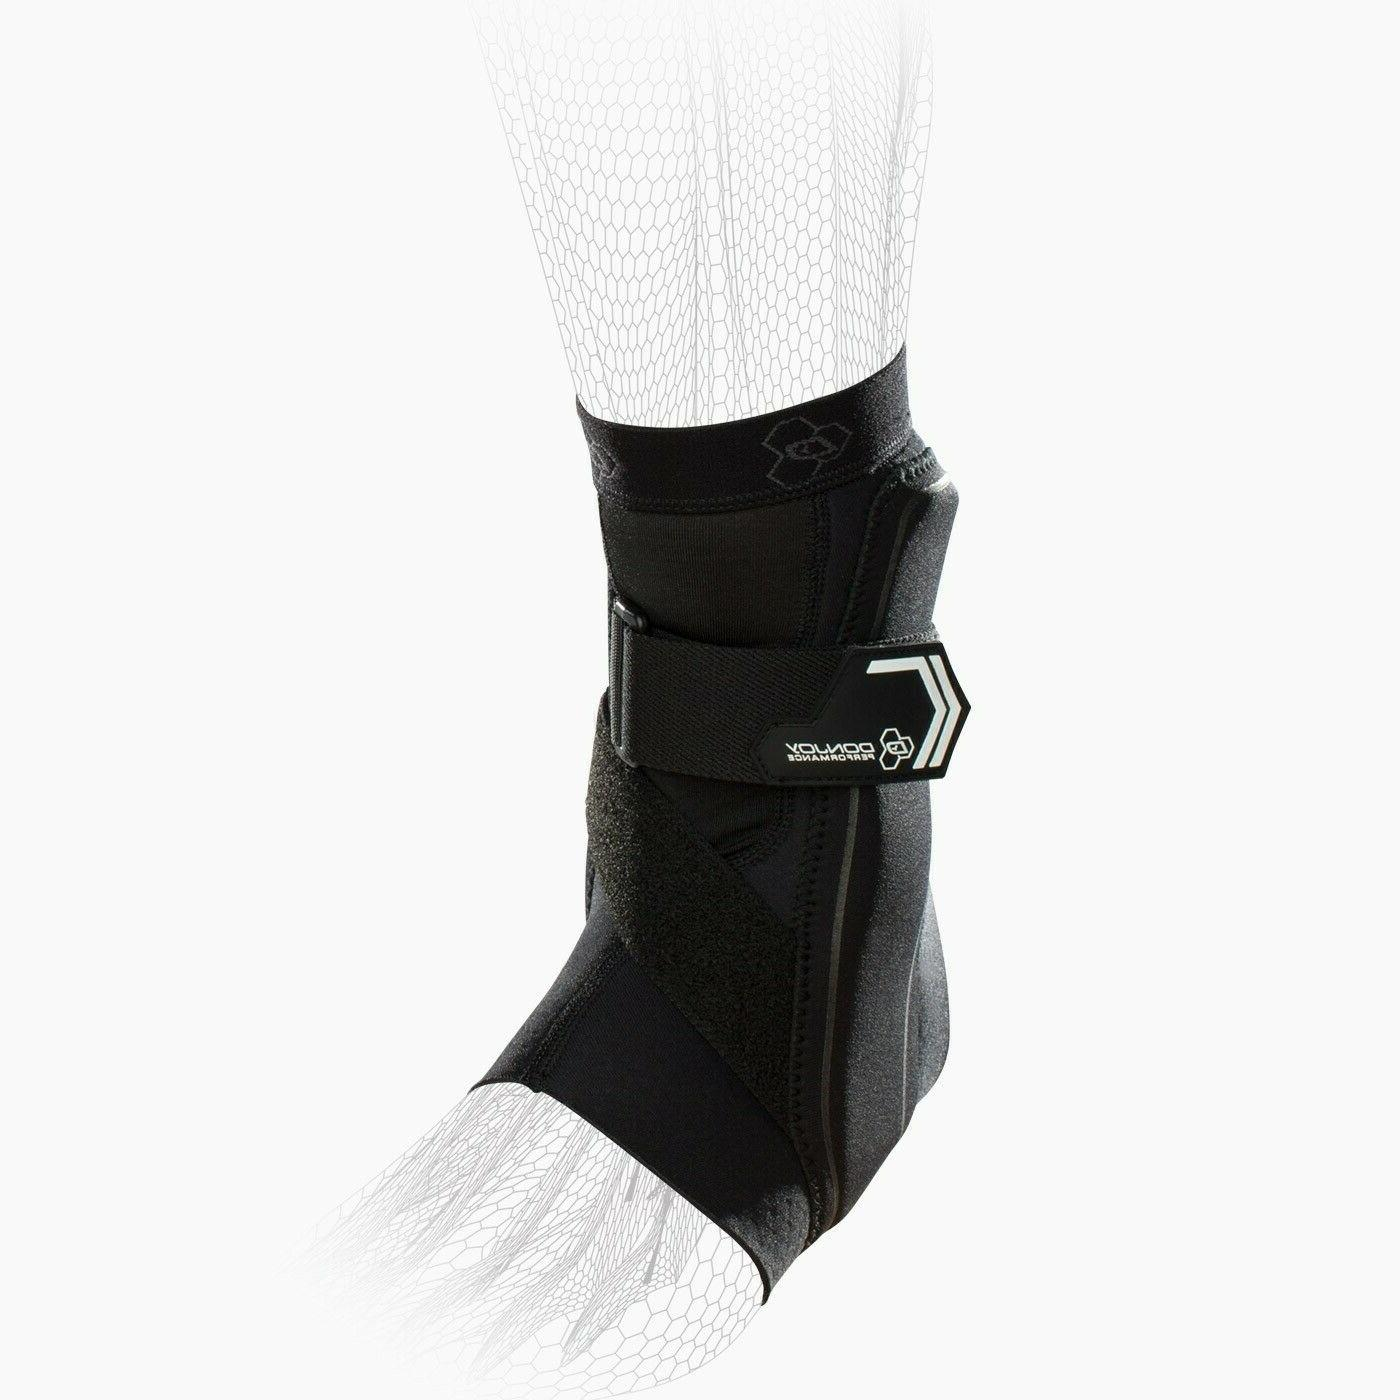 Performance Support S M L XL 2 ankle